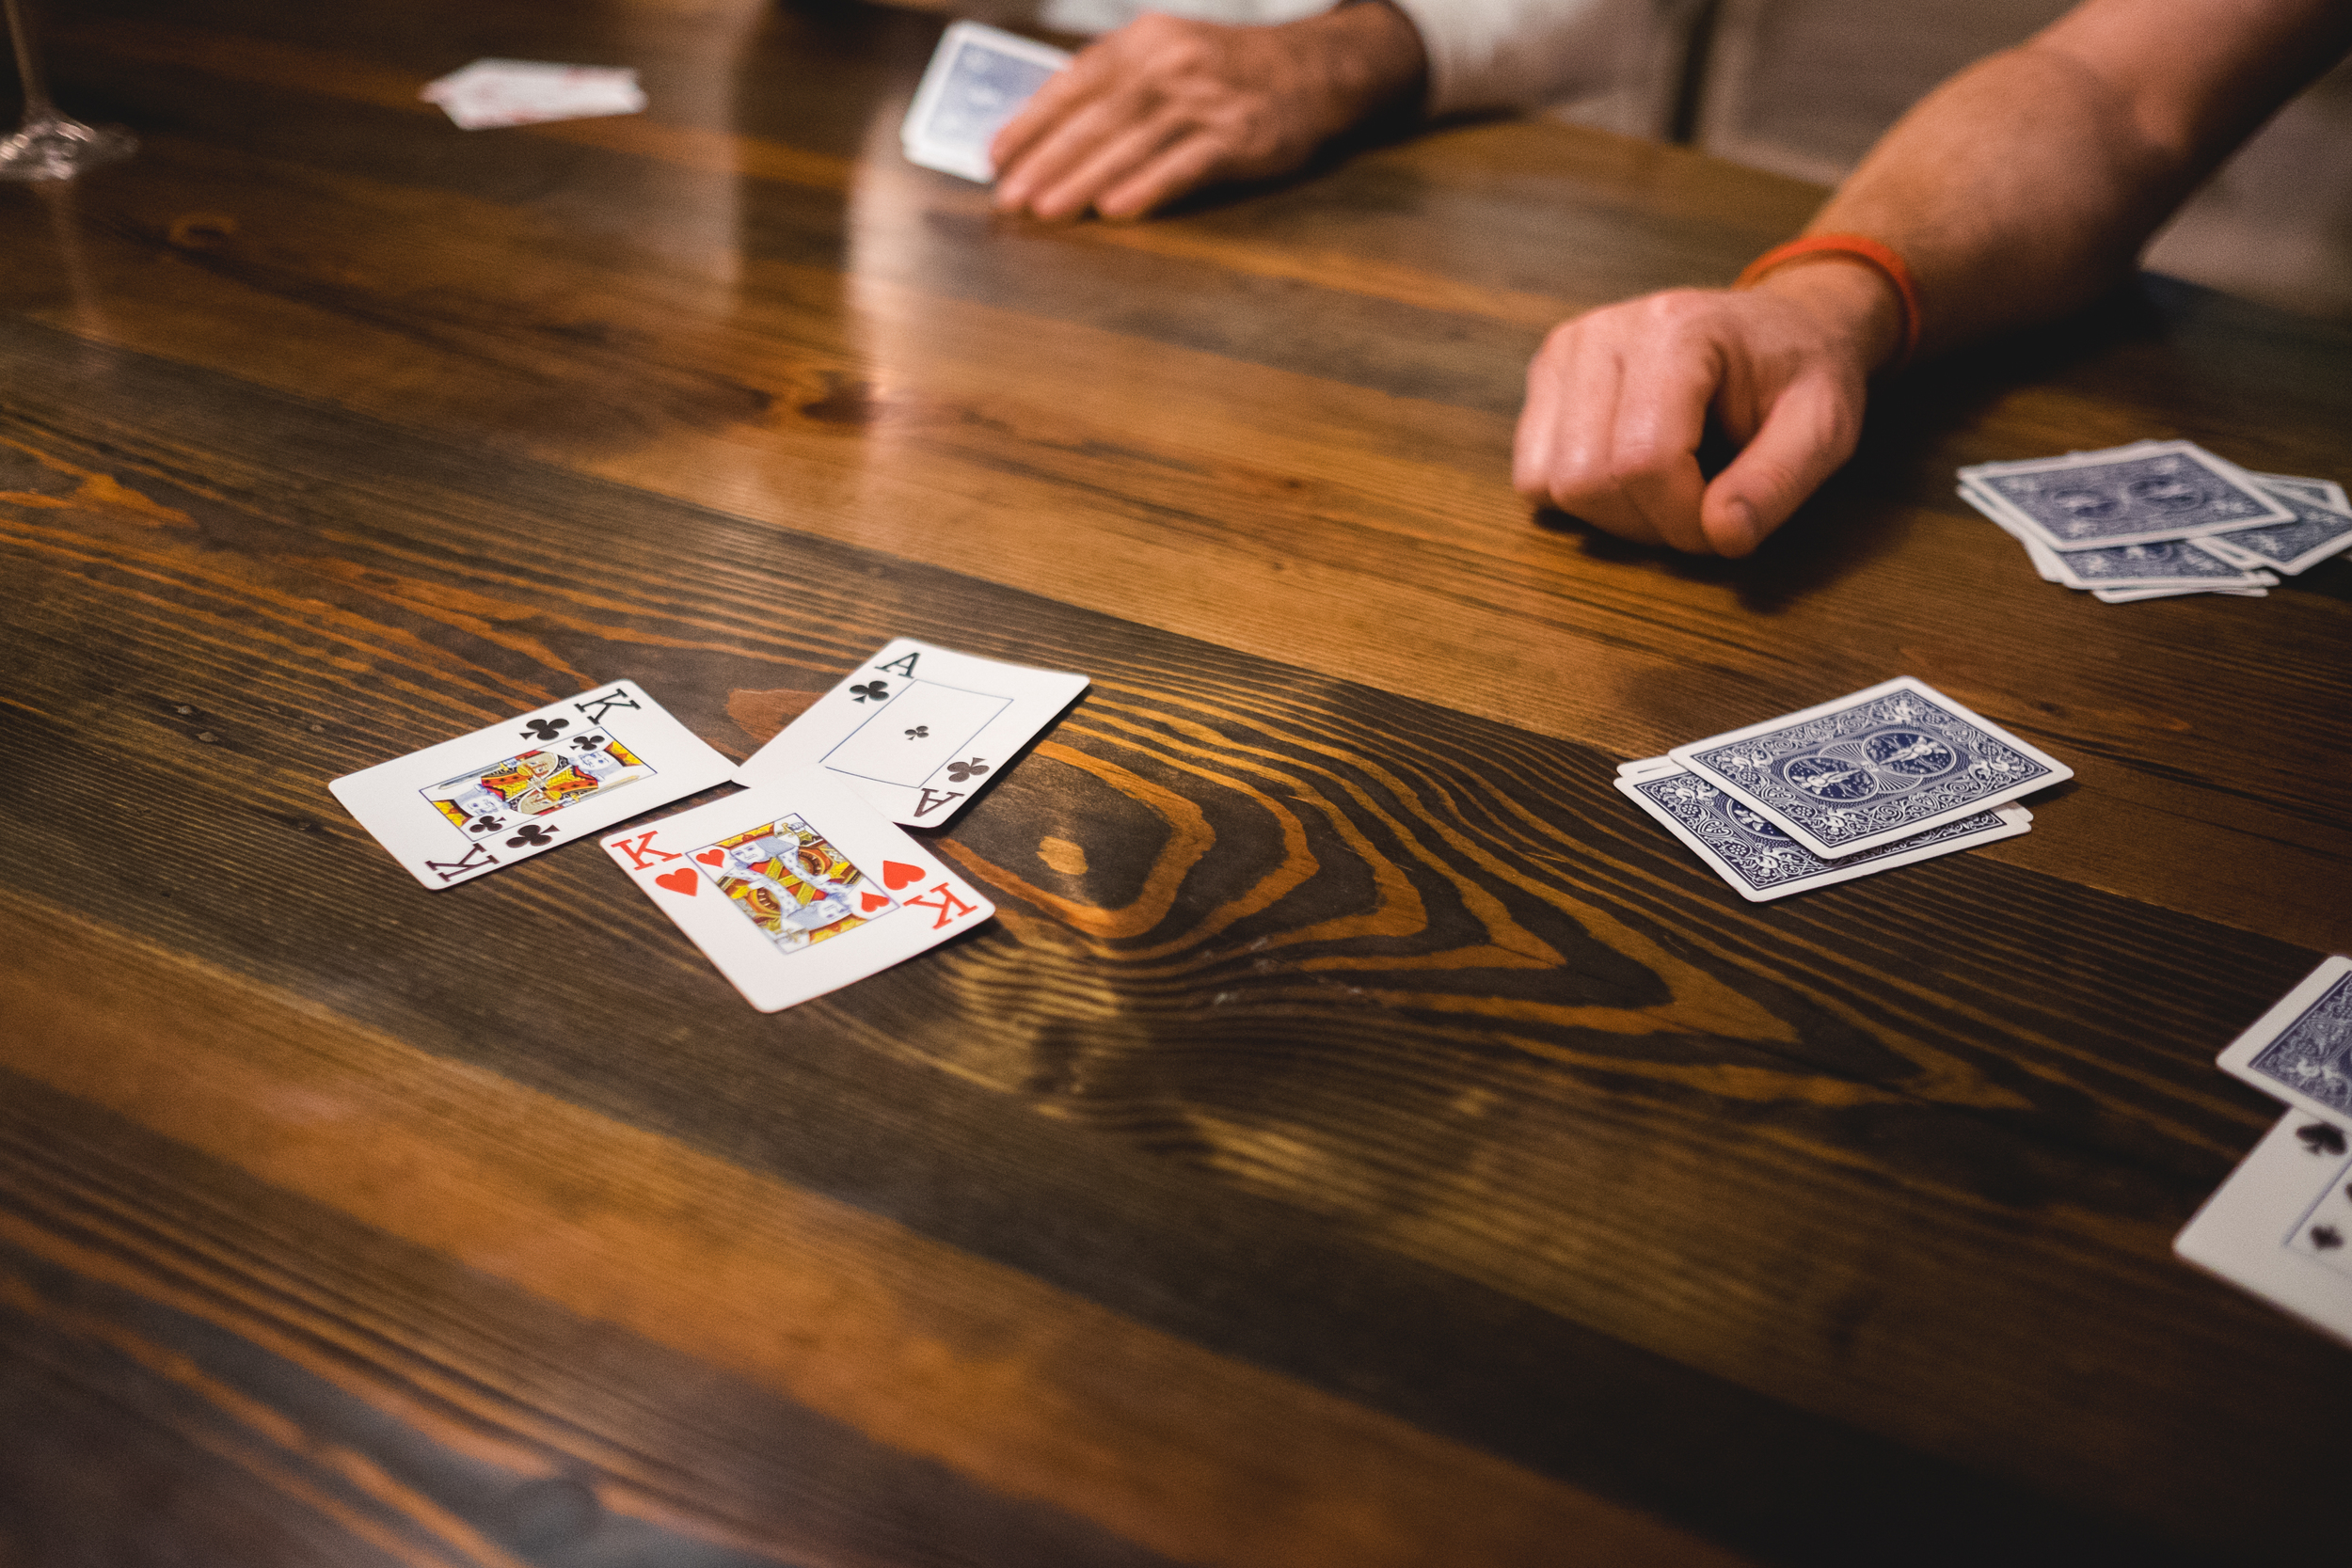 When on vacation, play cards. Lots of them.